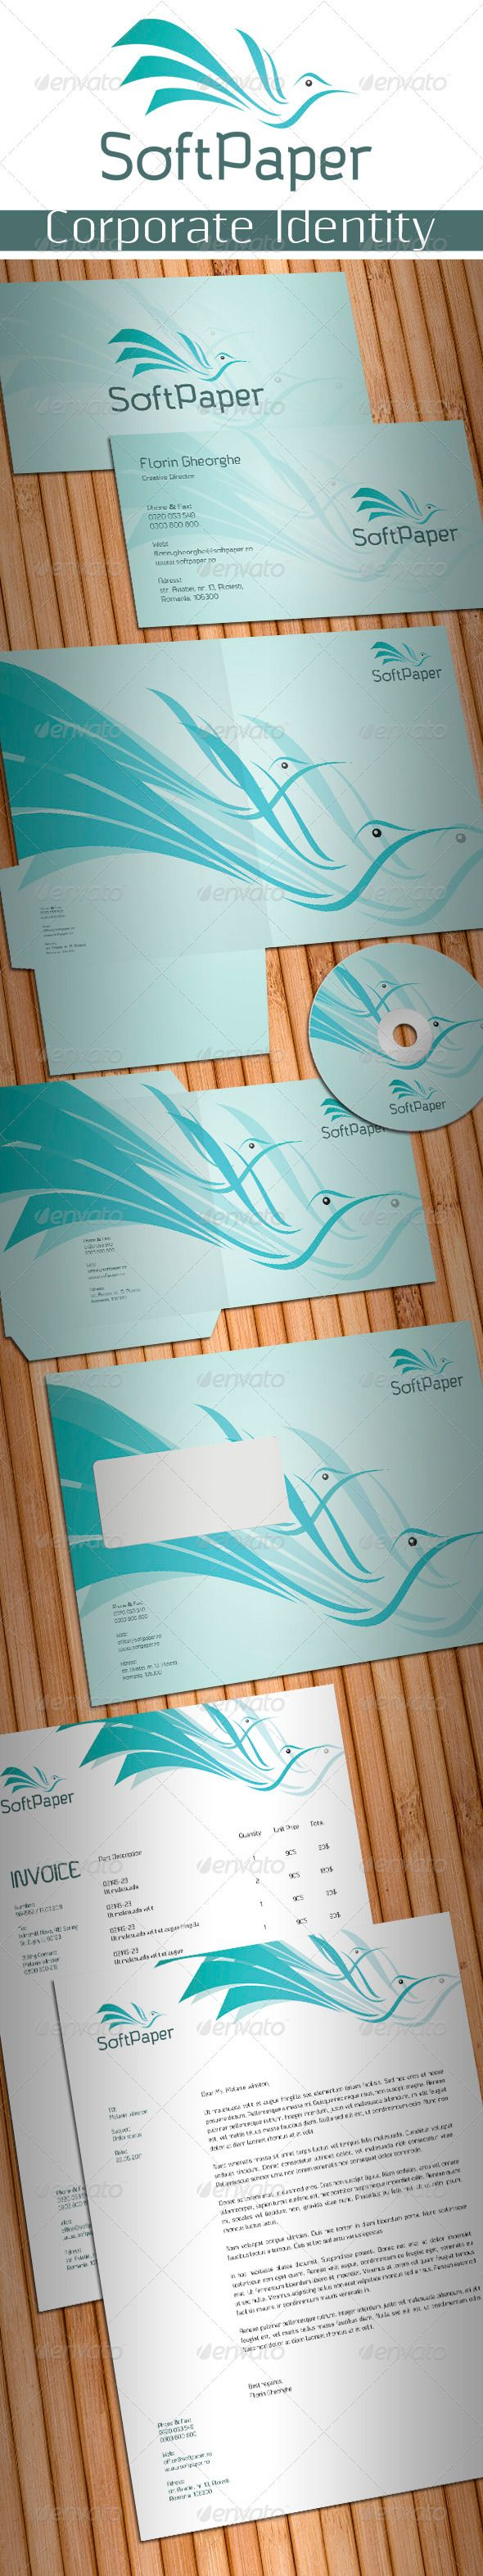 Soft Paper Stationery  #GraphicRiver         Simple, clean and modern Paper related business stationery package.   Simple to work with and highly customizable, it ca be easely adjusted to fit your needs.   All layeres are well named and organized.   High quality fully layered and fully editable PSD templates. Print Ready, CMYK , 300 dpi with bleed and guidelines.   Pakage includes:   1. Business Card 2. Poket Folder 3. CD Covers and CD Label 4. C5 Envelope 5. Letterhead 6. Invoice  …